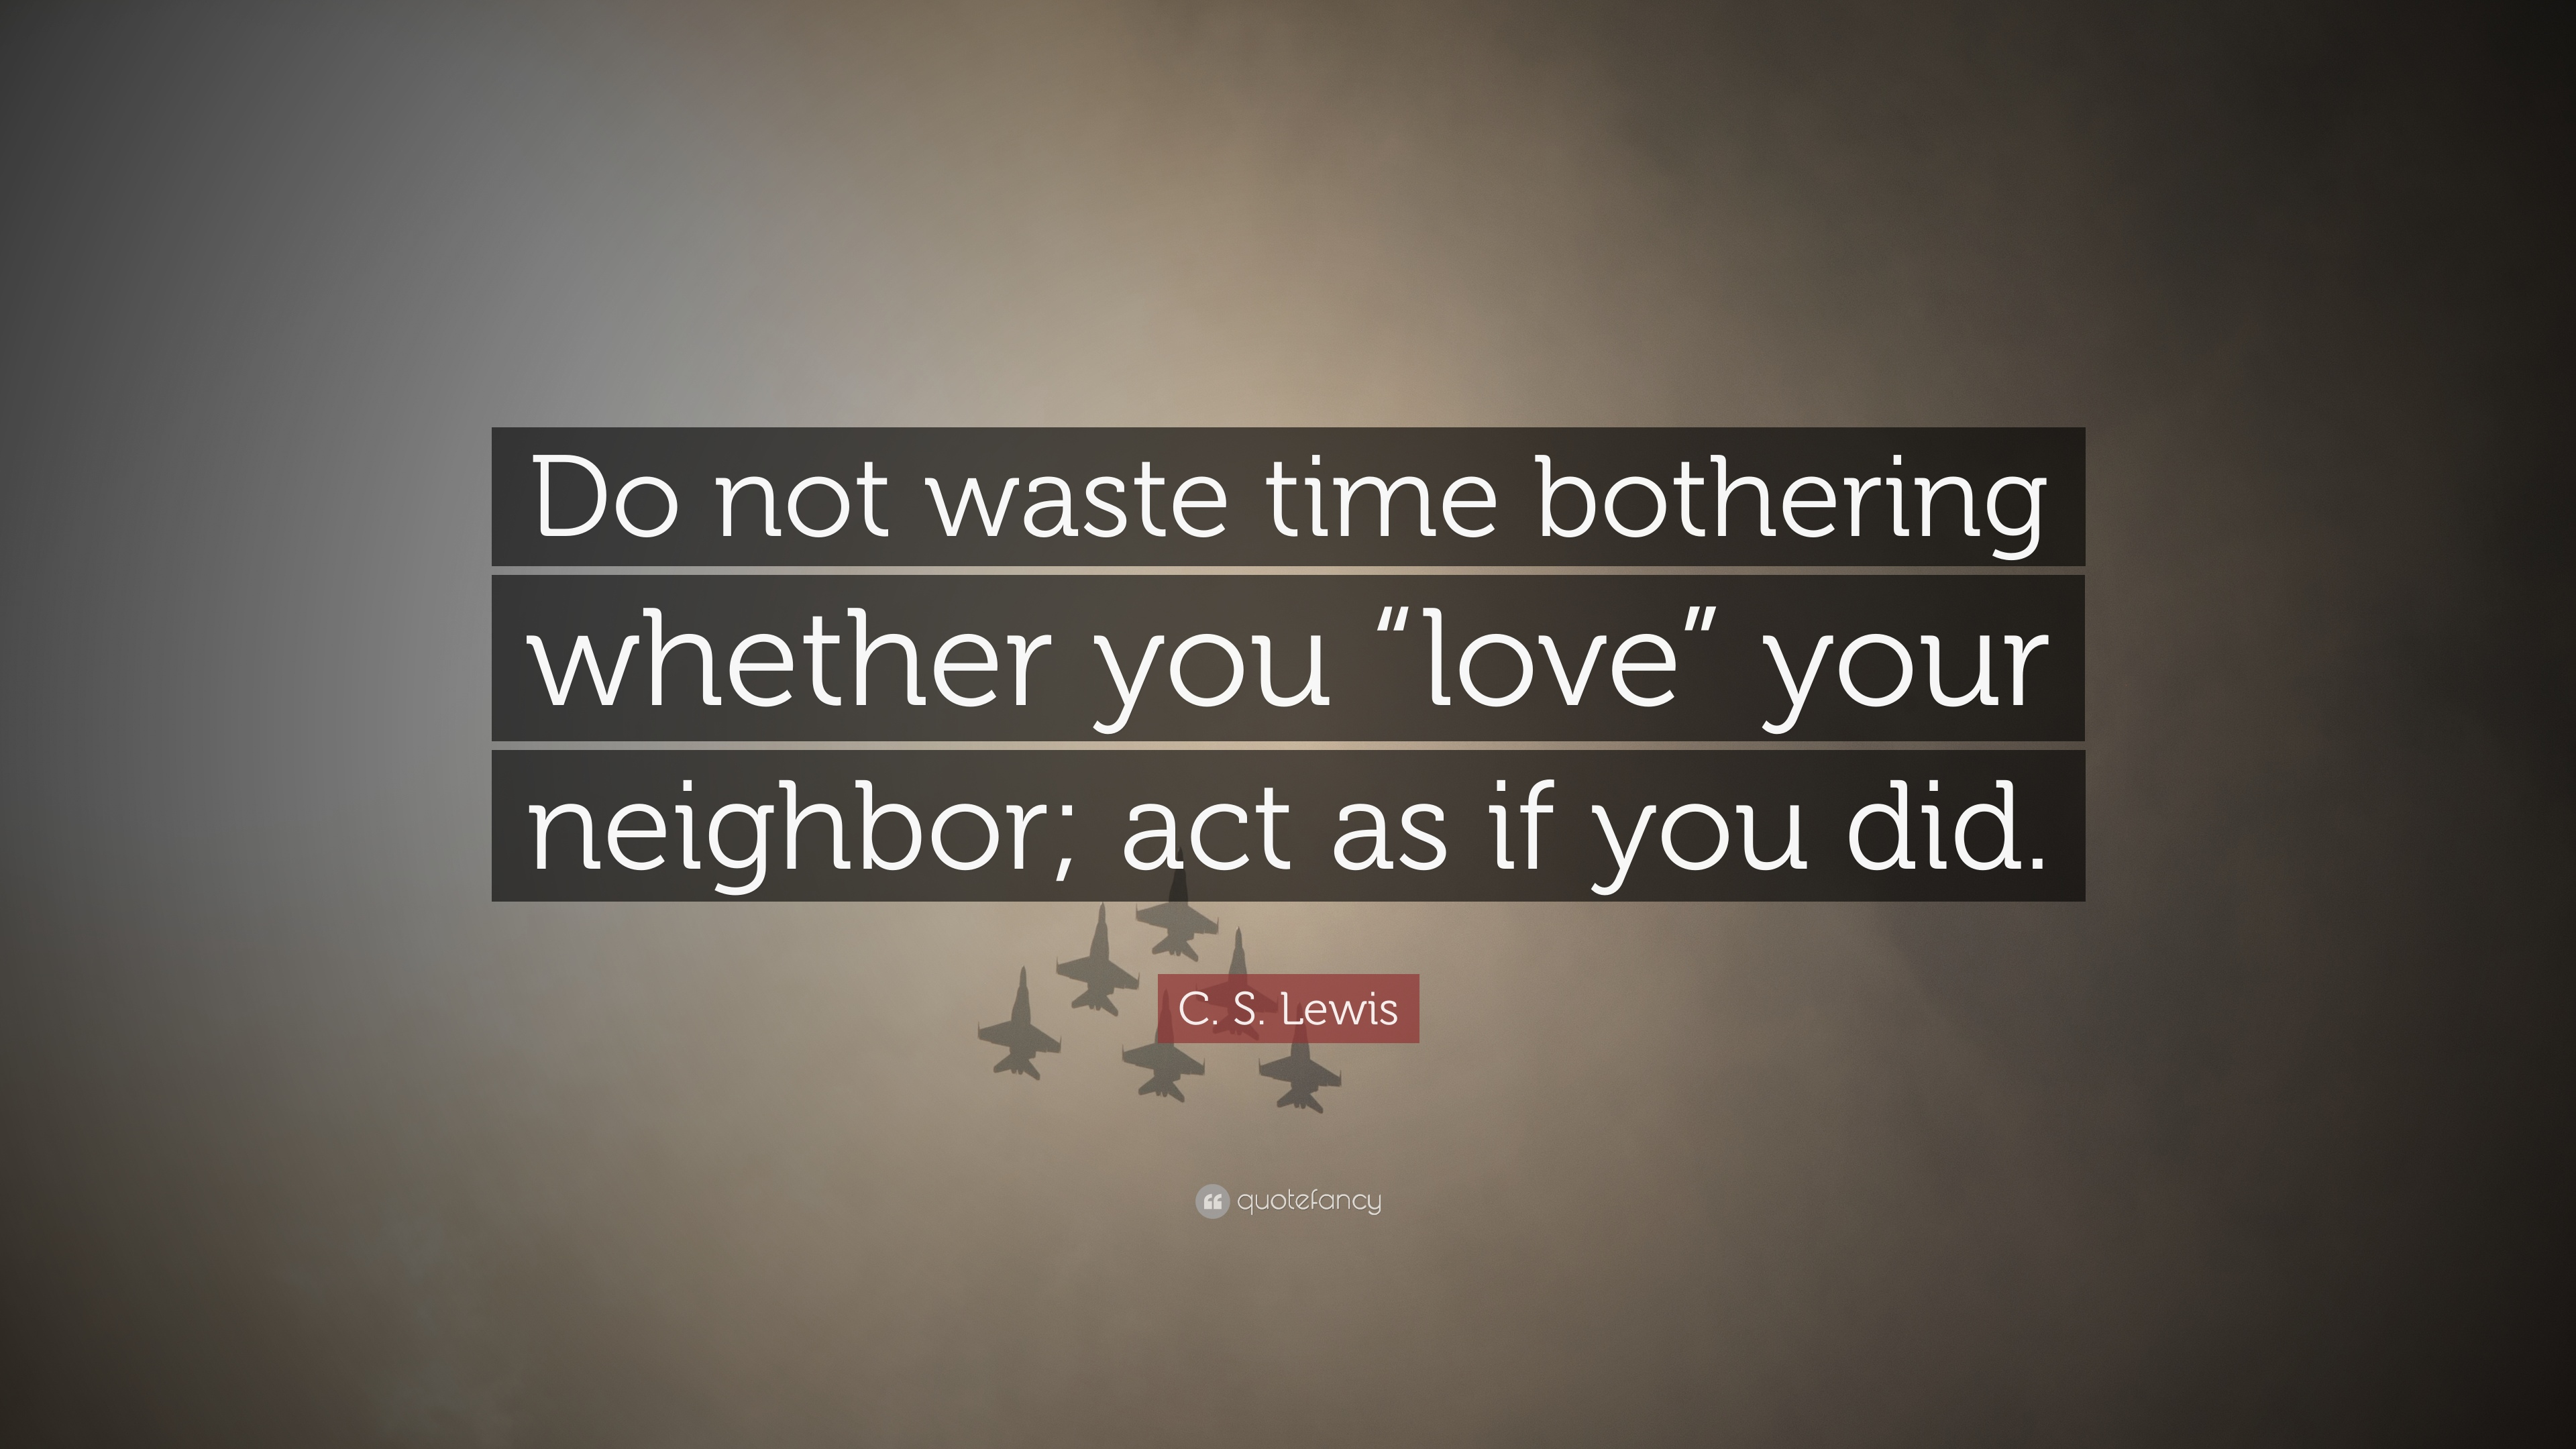 C S Lewis Quote Do Not Waste Time Bothering Whether You Love